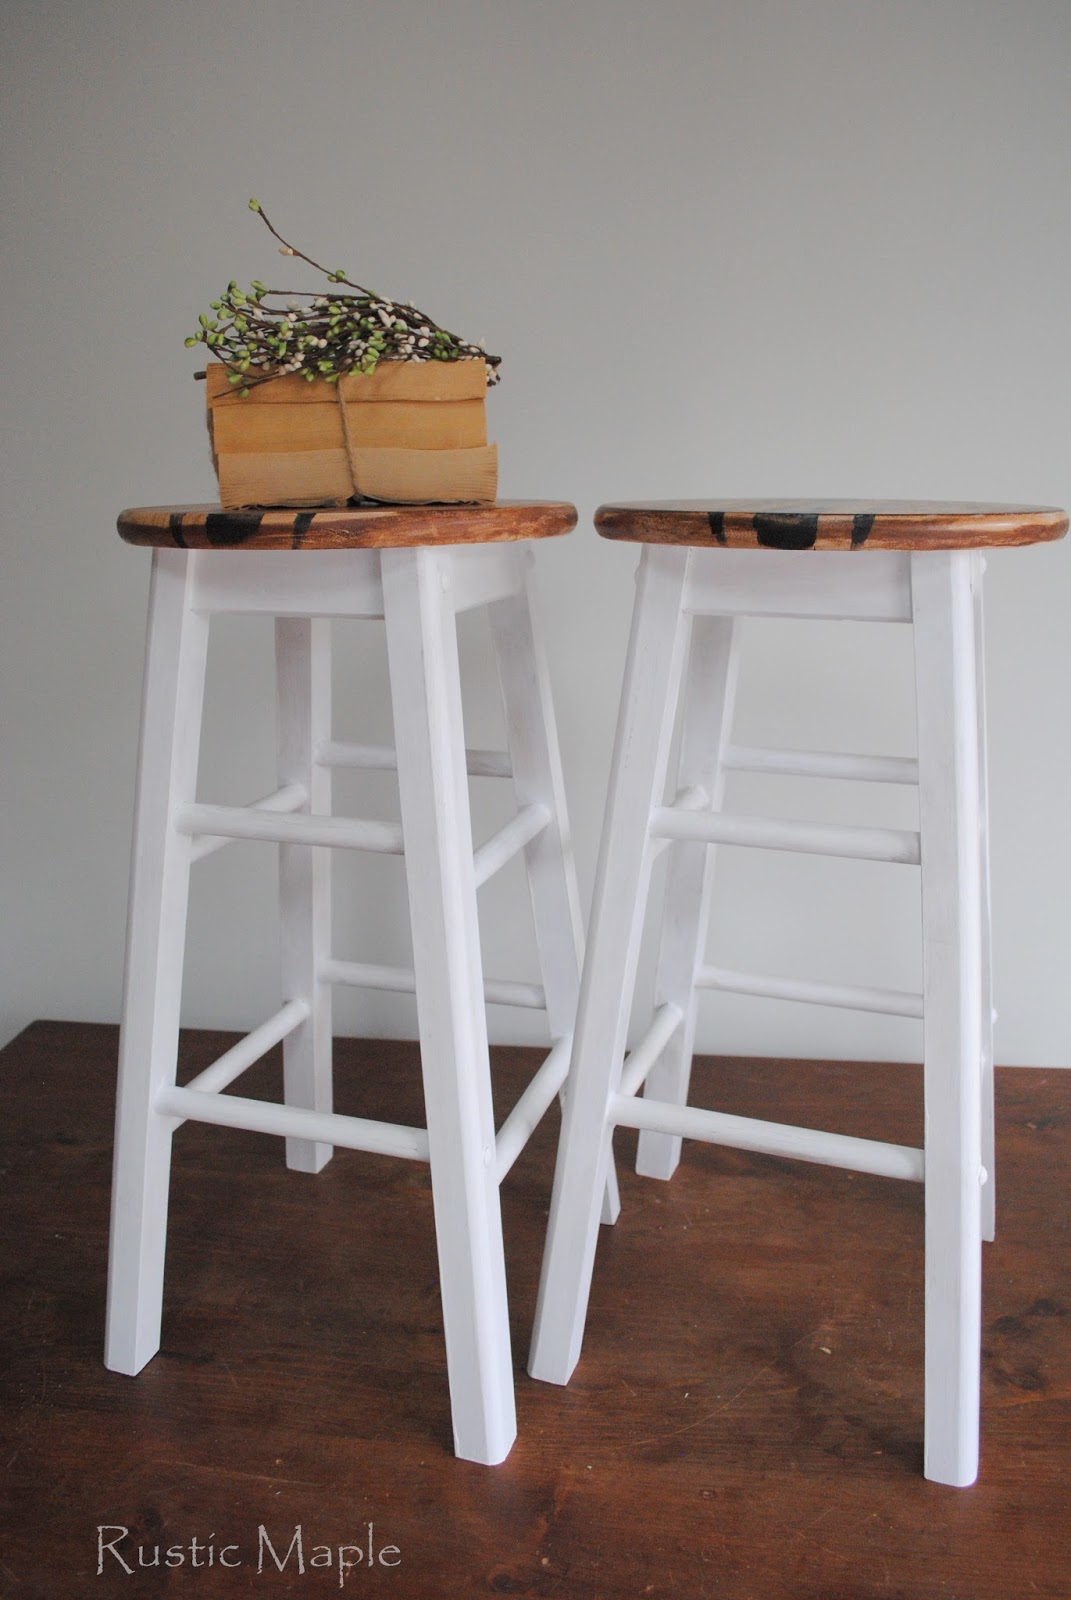 Wood + White Barstools Makeover & Rustic Maple: Wood + White Barstools Makeover islam-shia.org